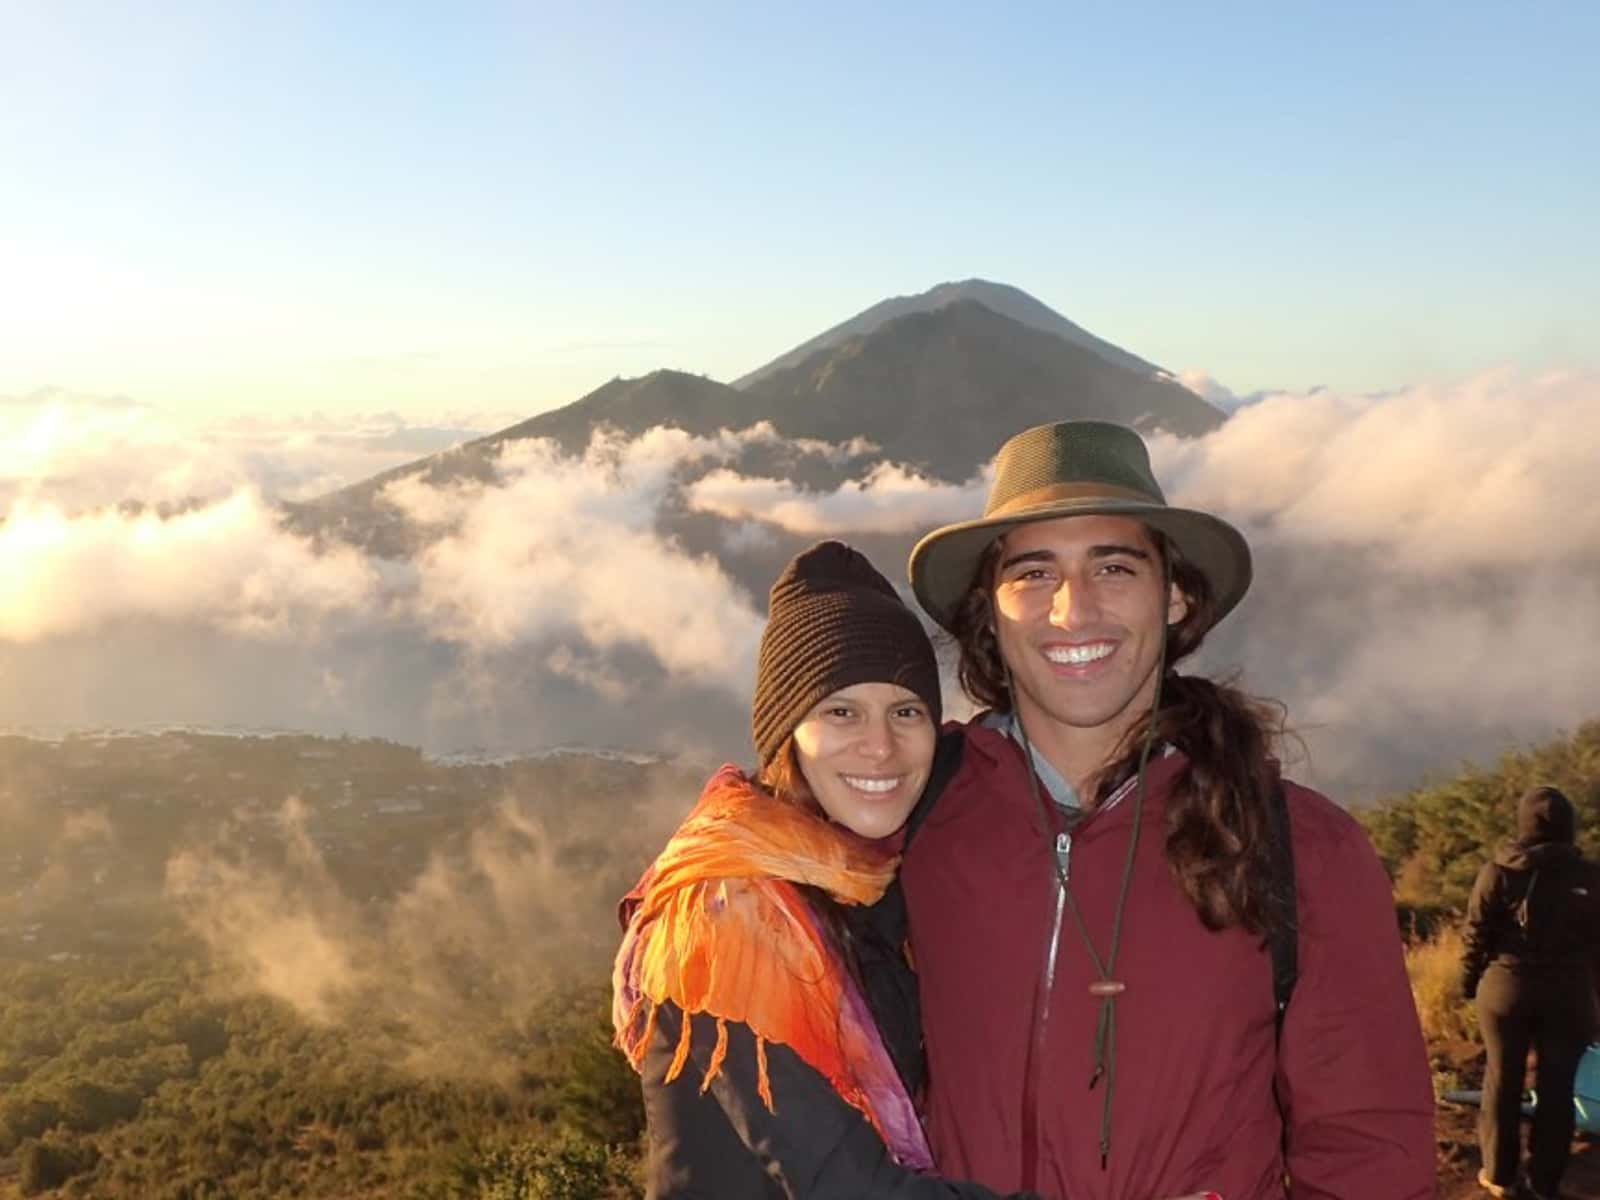 Monica & Michael from Delft, Netherlands